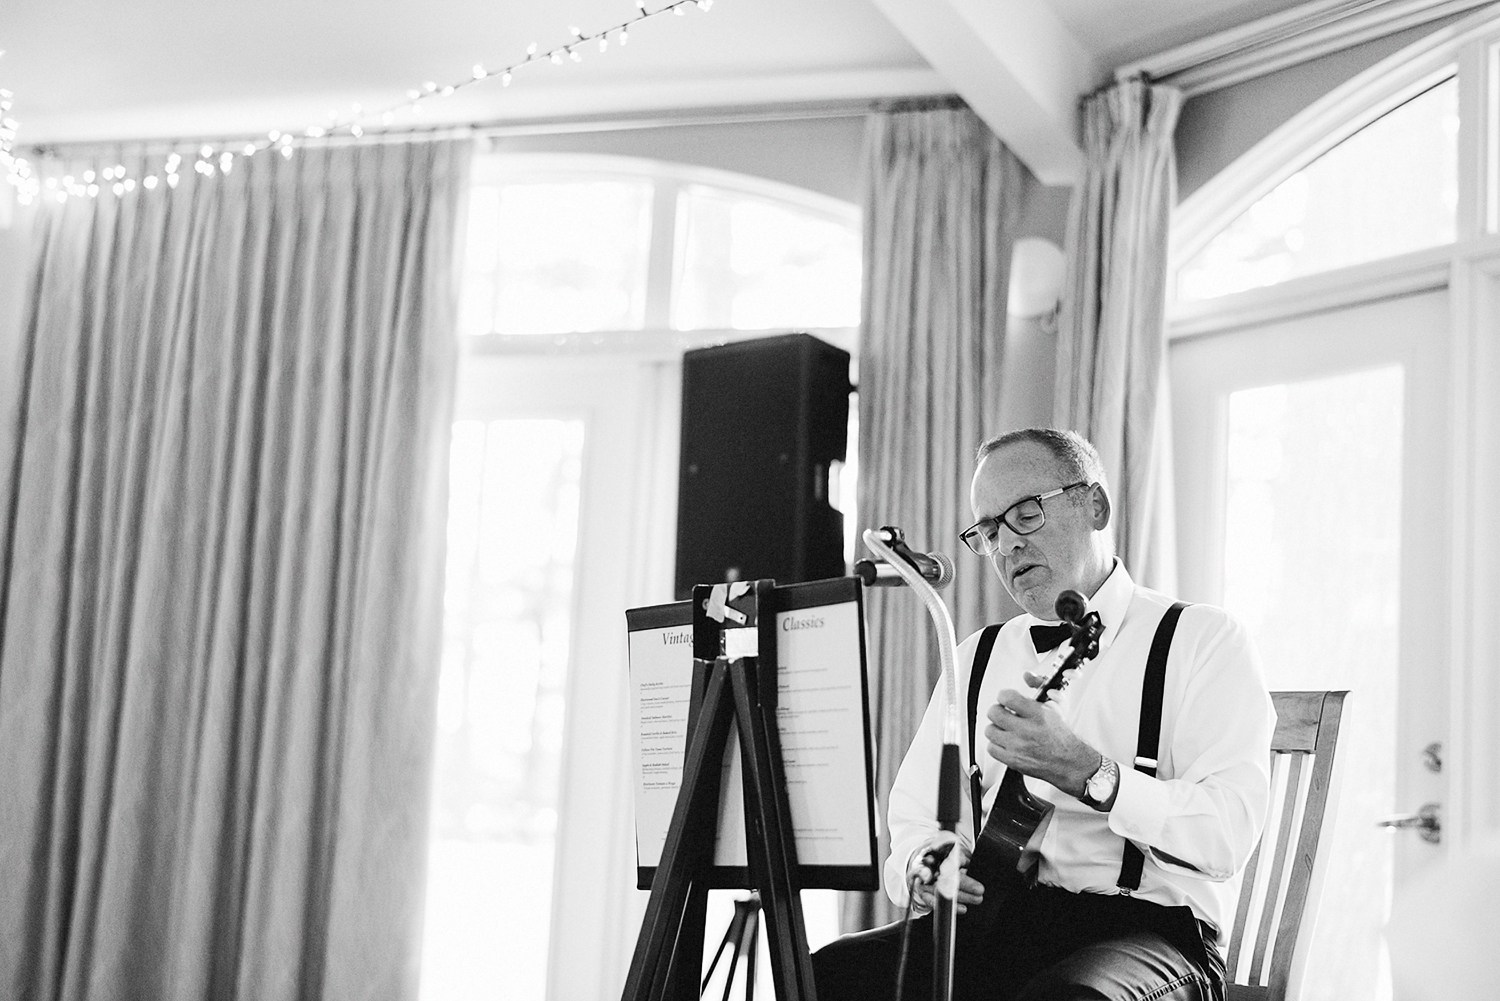 Muskoka-Cottage-Wedding-Photography-Photographer_Photojournalistic-Documentary-Wedding-Photography_Vintage-Bride-Lovers-Land-Dress_Nature_Film_Sherwood-Inn-Reception-Venue-Dad-playing-Ukelele.jpg